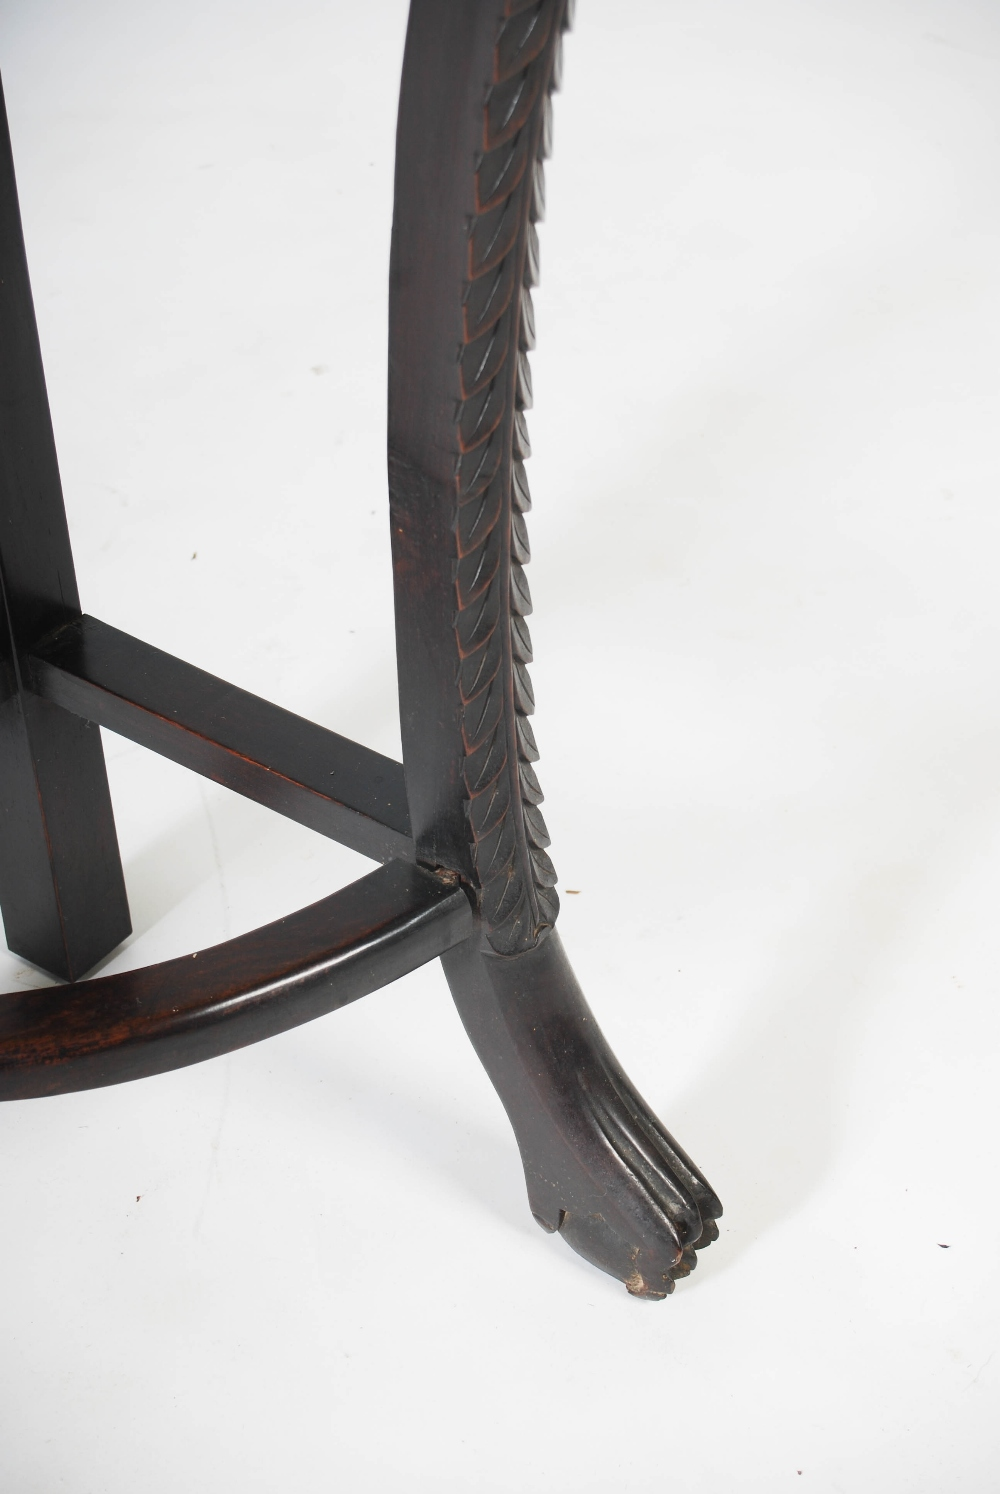 Lot 84 - A Chinese dark wood corner shaped jardiniere stand, Qing Dynasty, the shaped top with a mottled